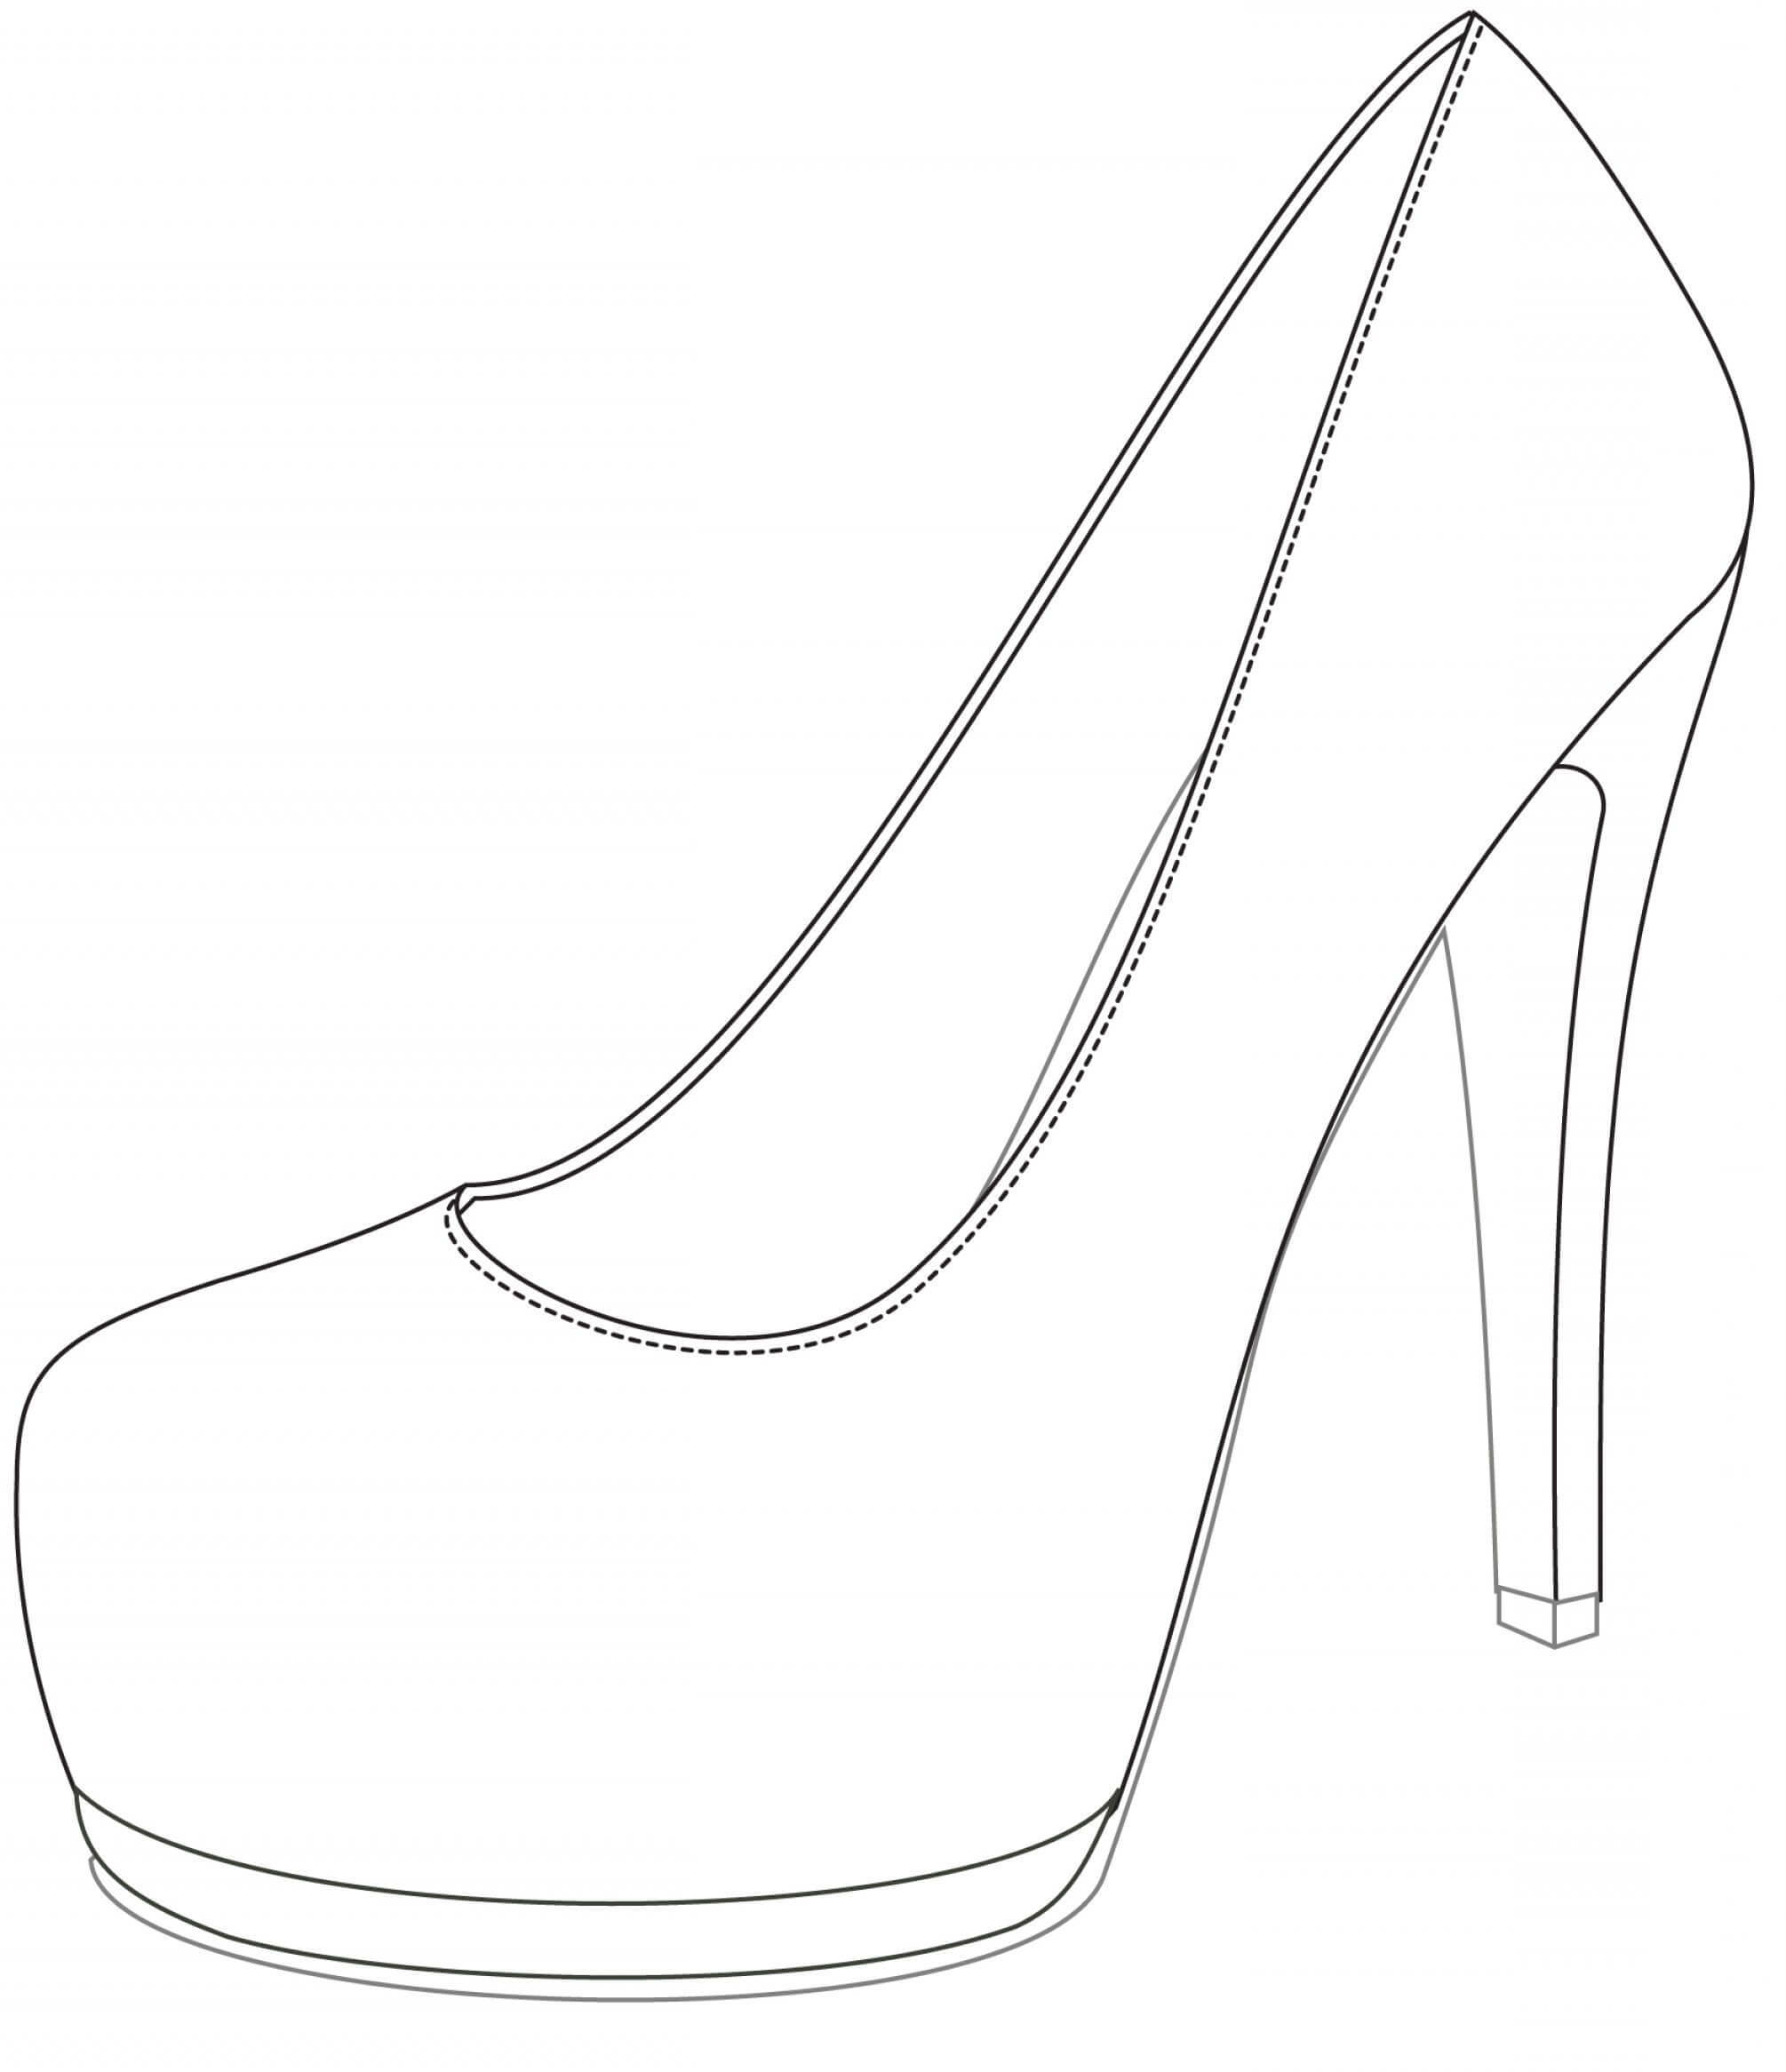 Shoe Drawing Template | Free Download Best Shoe Drawing within High Heel Shoe Template For Card